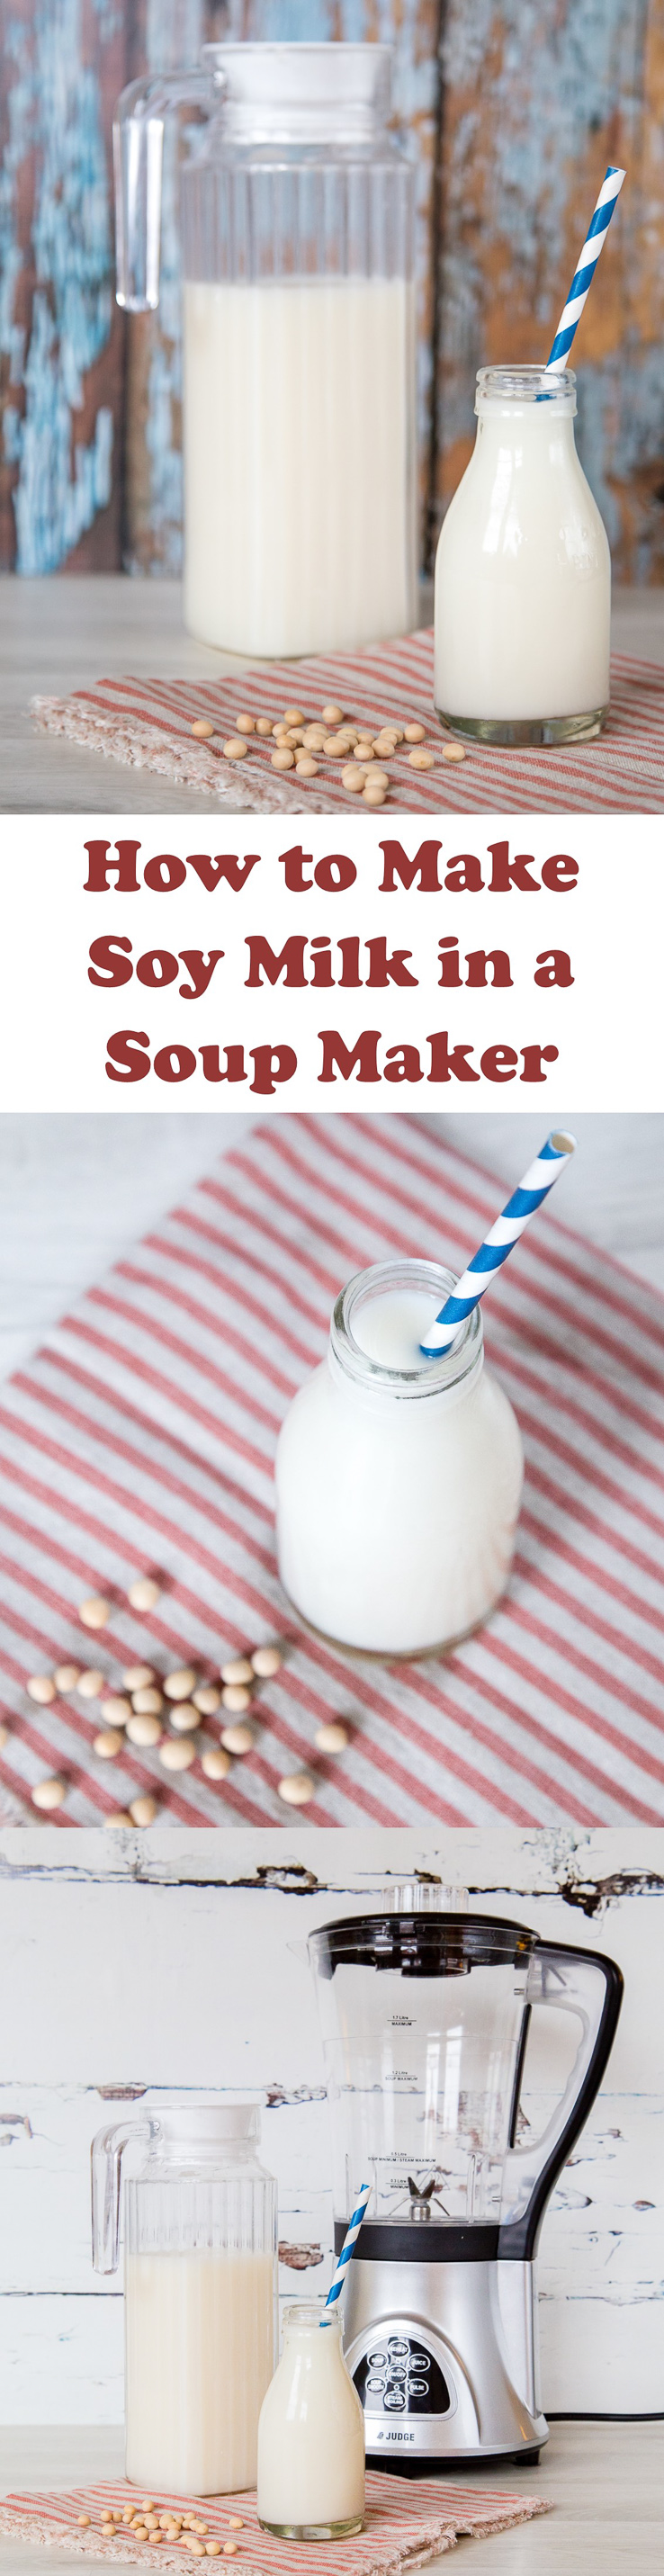 Soy milk is easy & frugal to make at home, as well as far better for you than shop bought in cartons. This recipe uses a soup maker so it is really simple